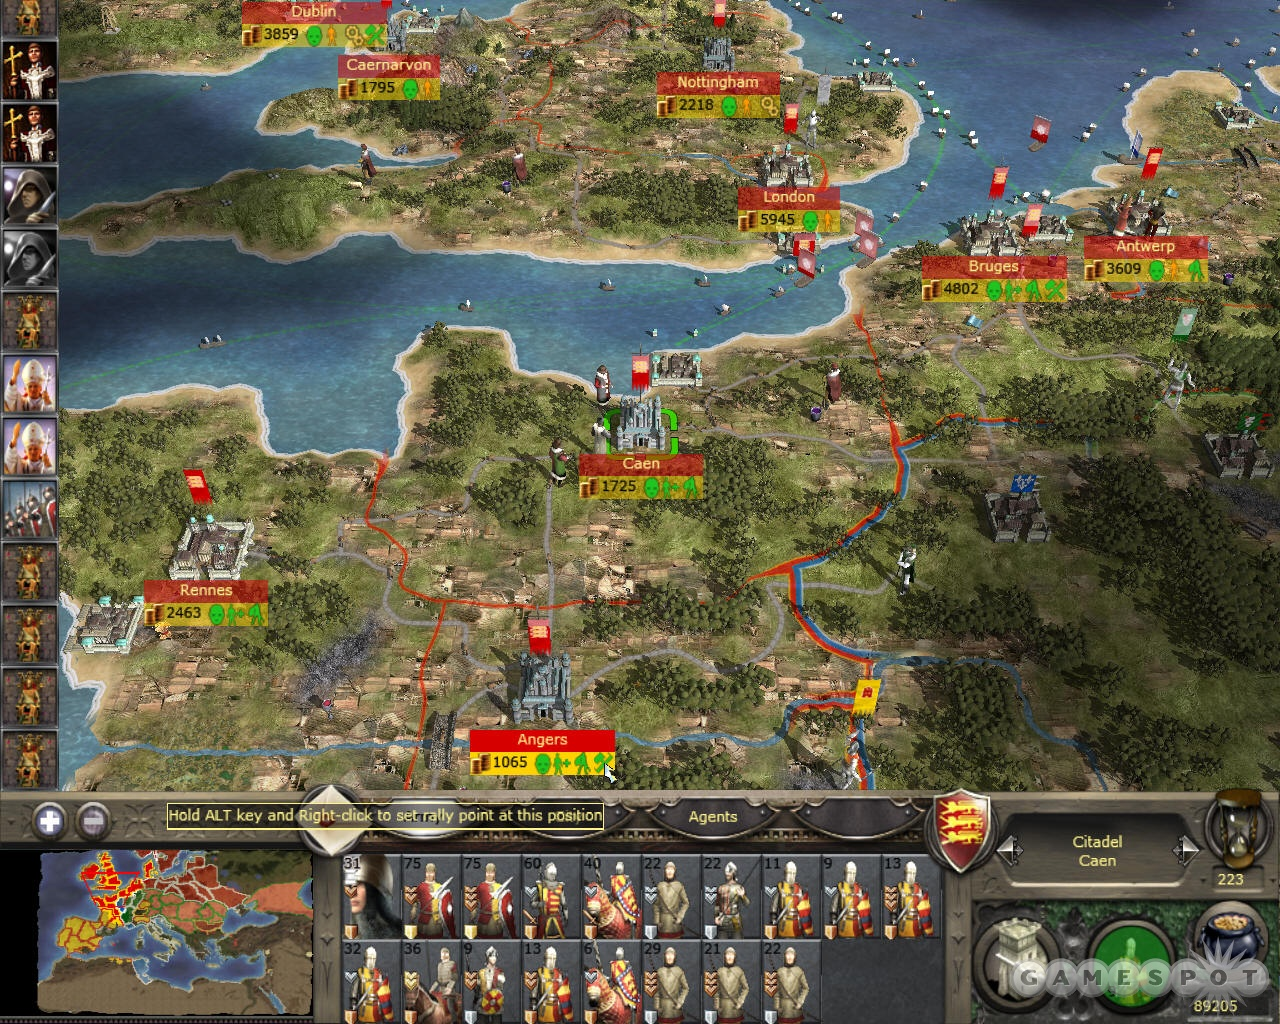 Medieval 2 offers a deep strategic layer that lets you manage the military, economy, and religion of a medieval kingdom.